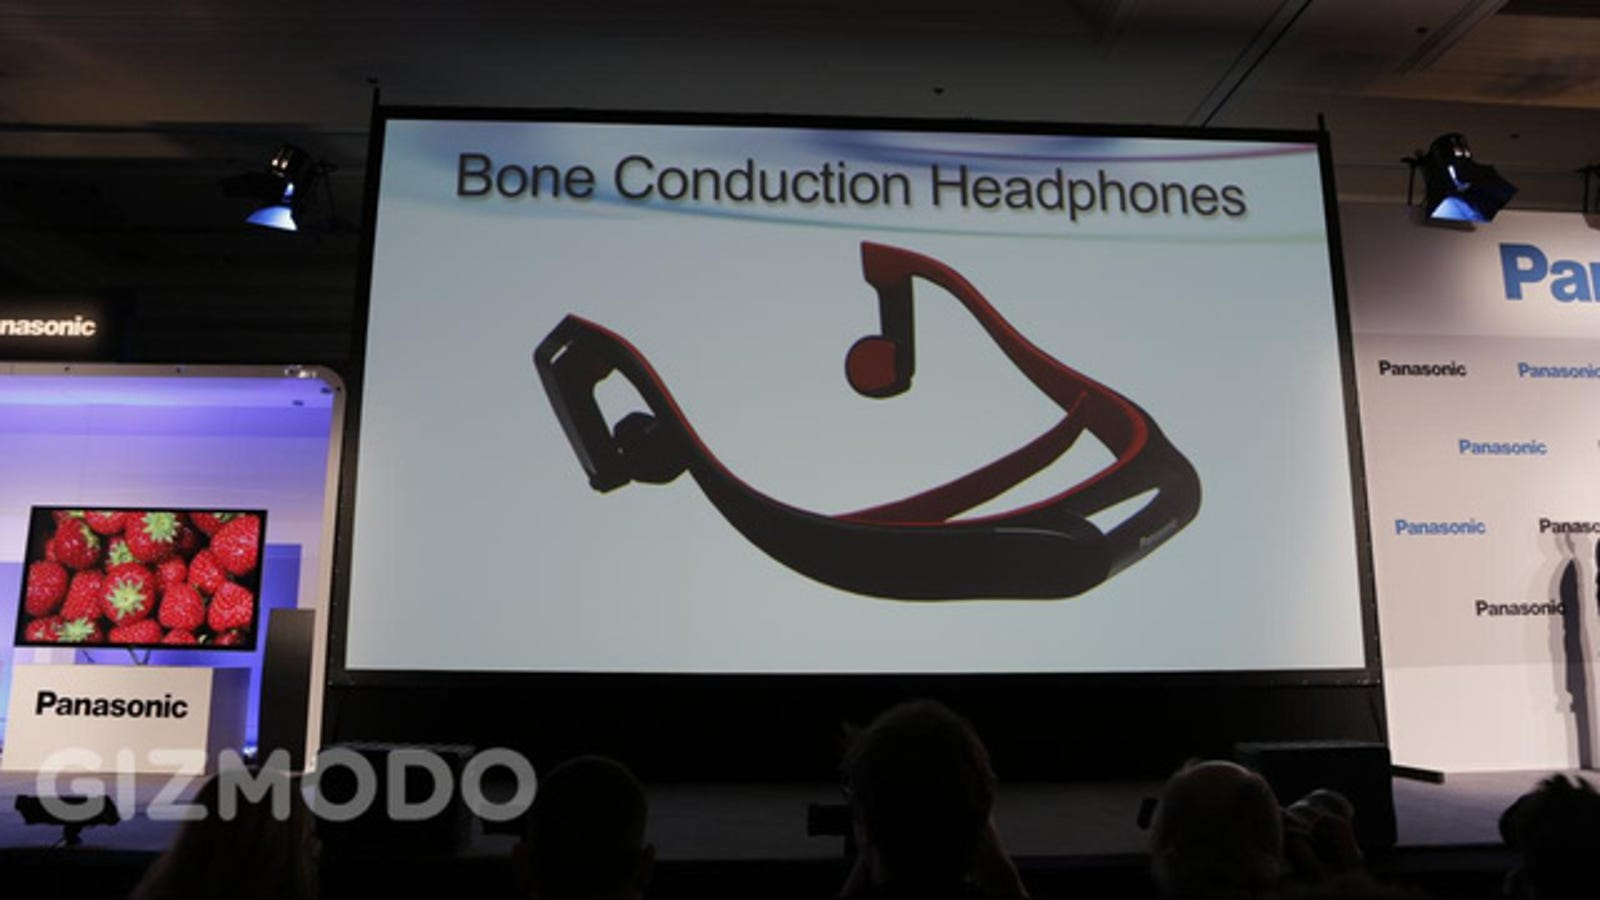 earbuds usb c type - Panasonic's New Bone Conducting Headphones: WTH?